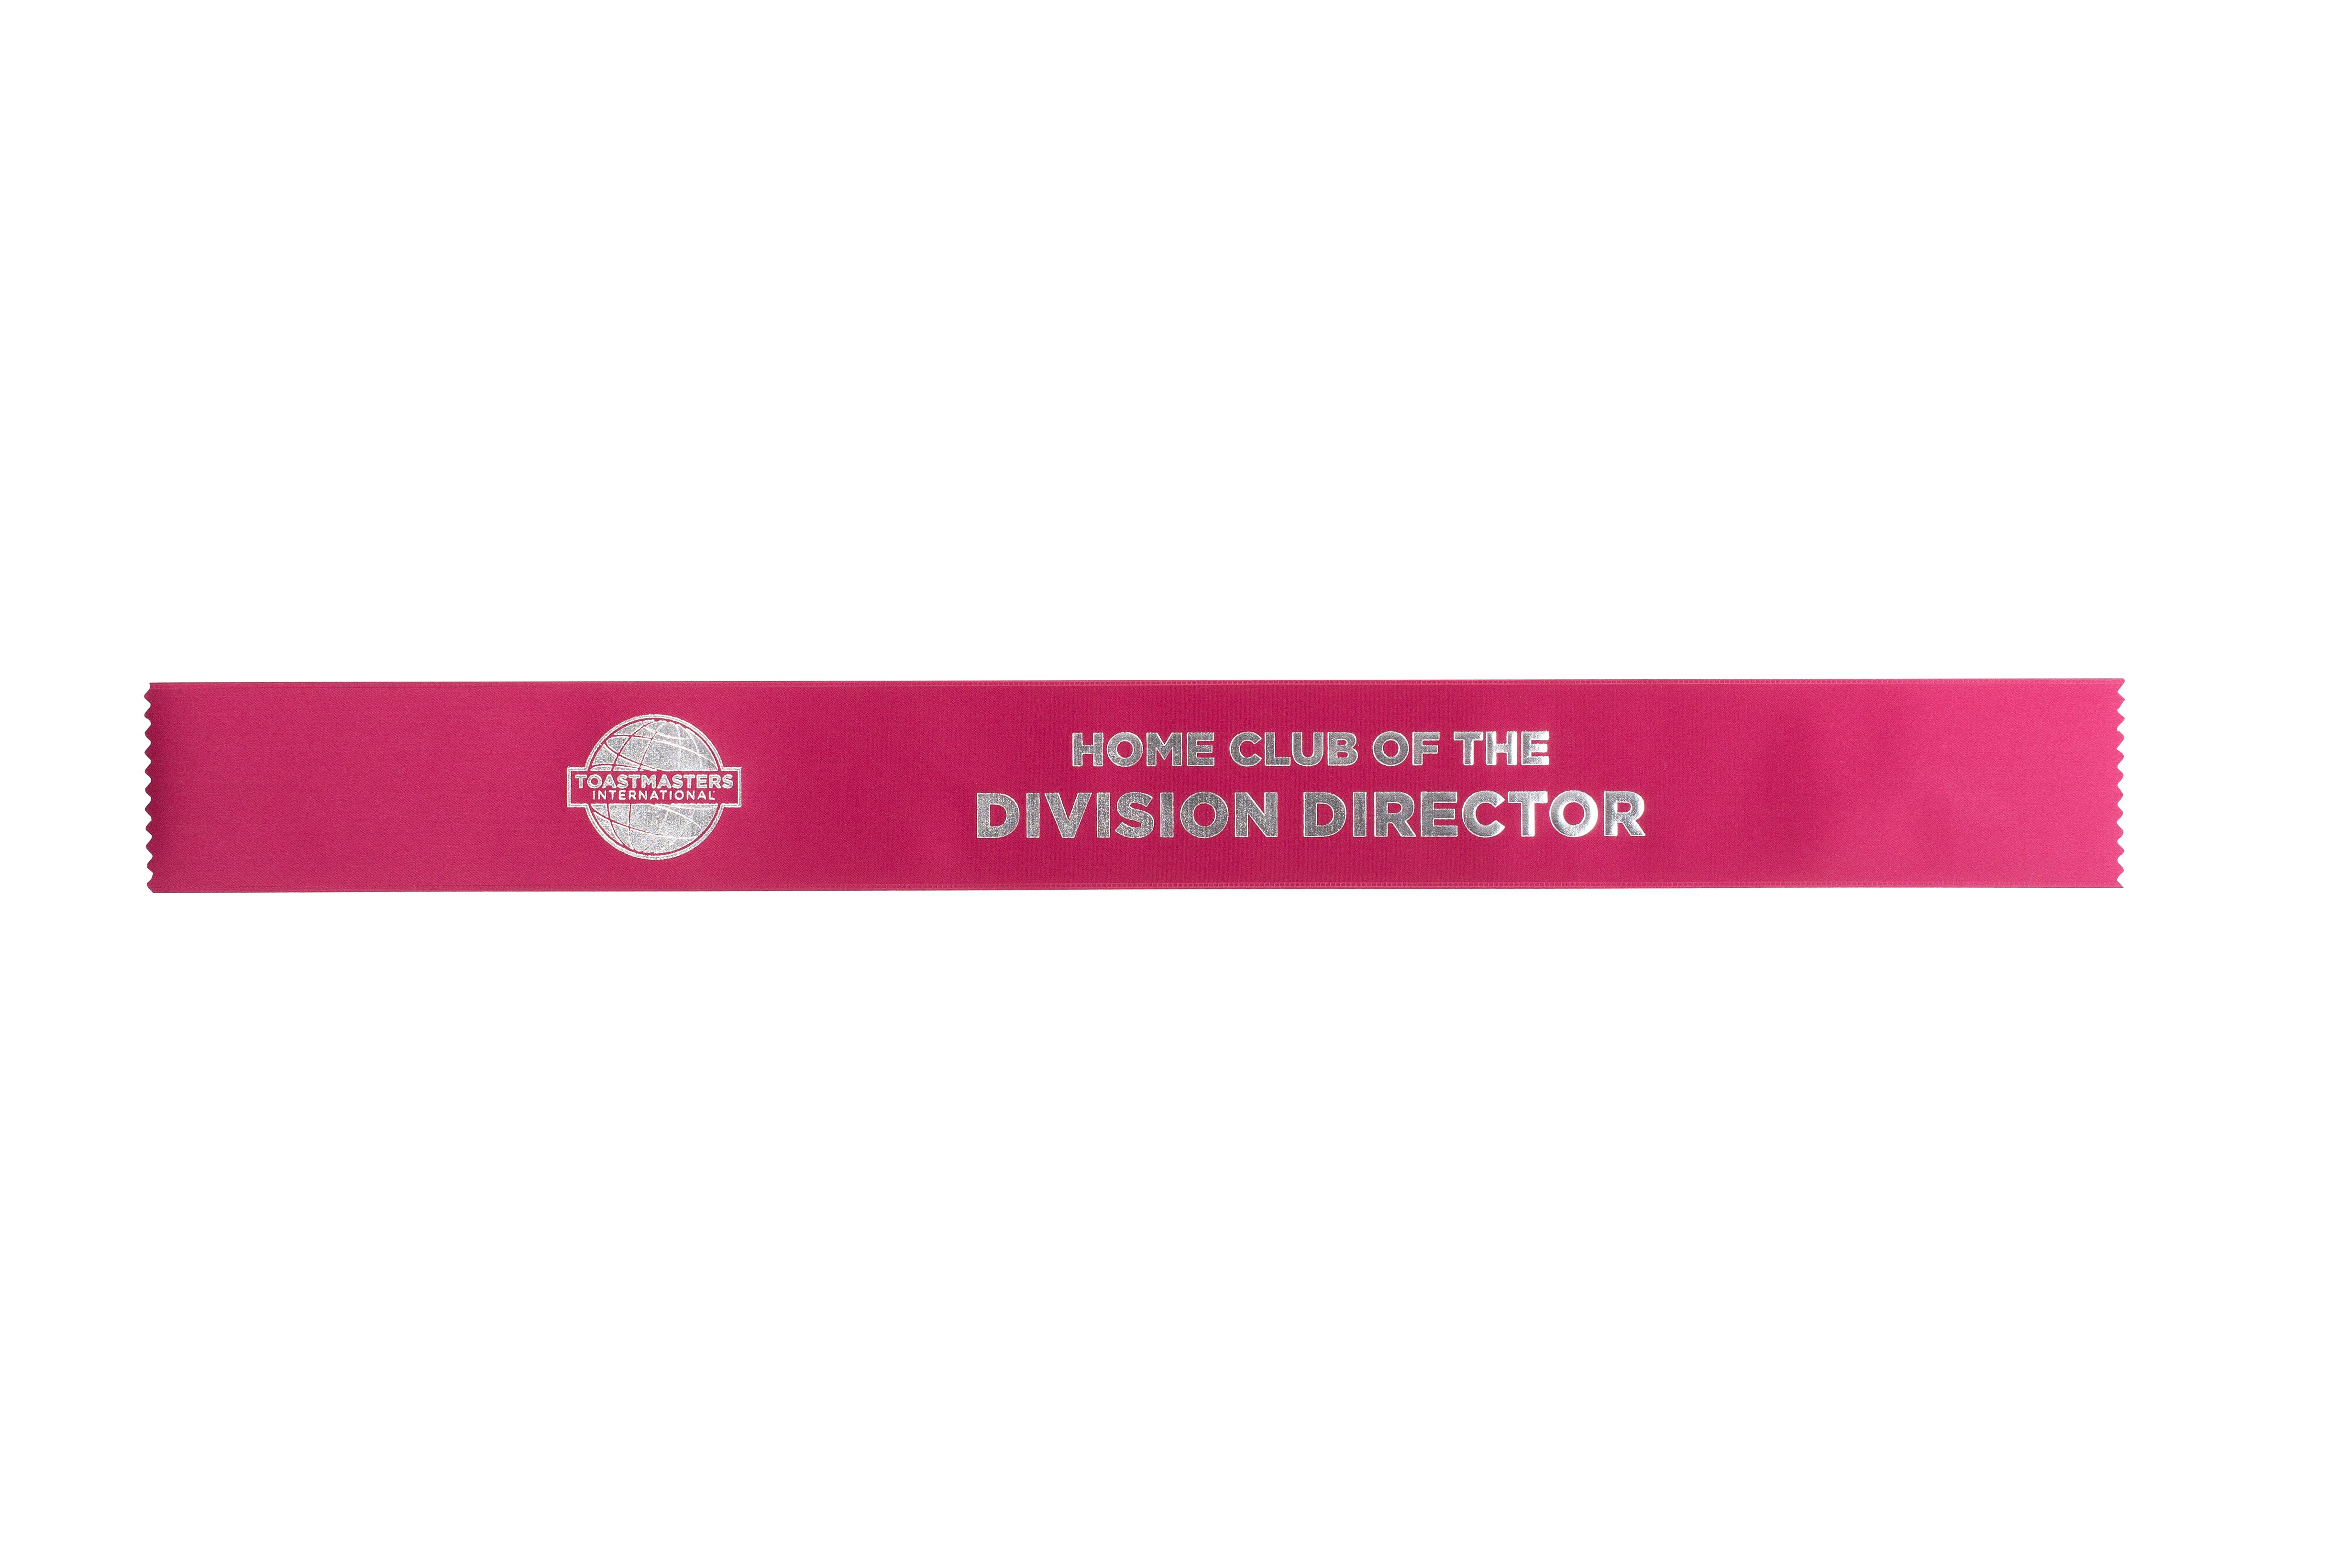 Home Club of the Division Director Ribbon